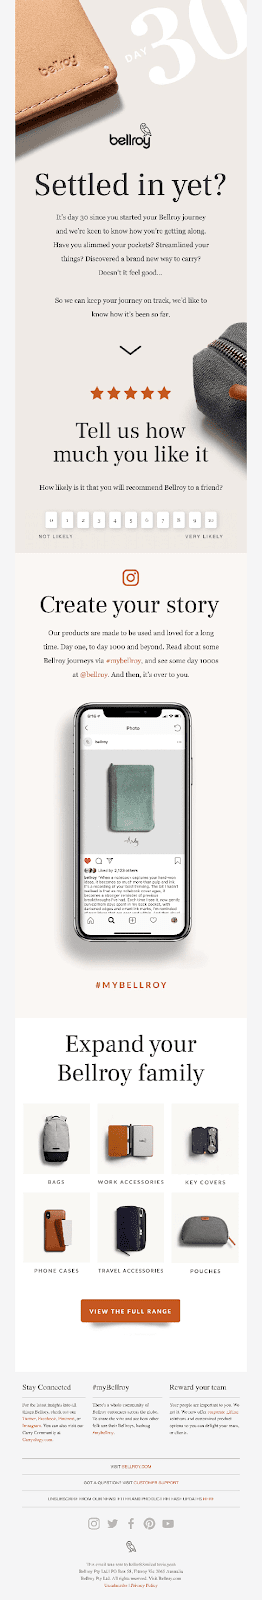 Bellroy email example